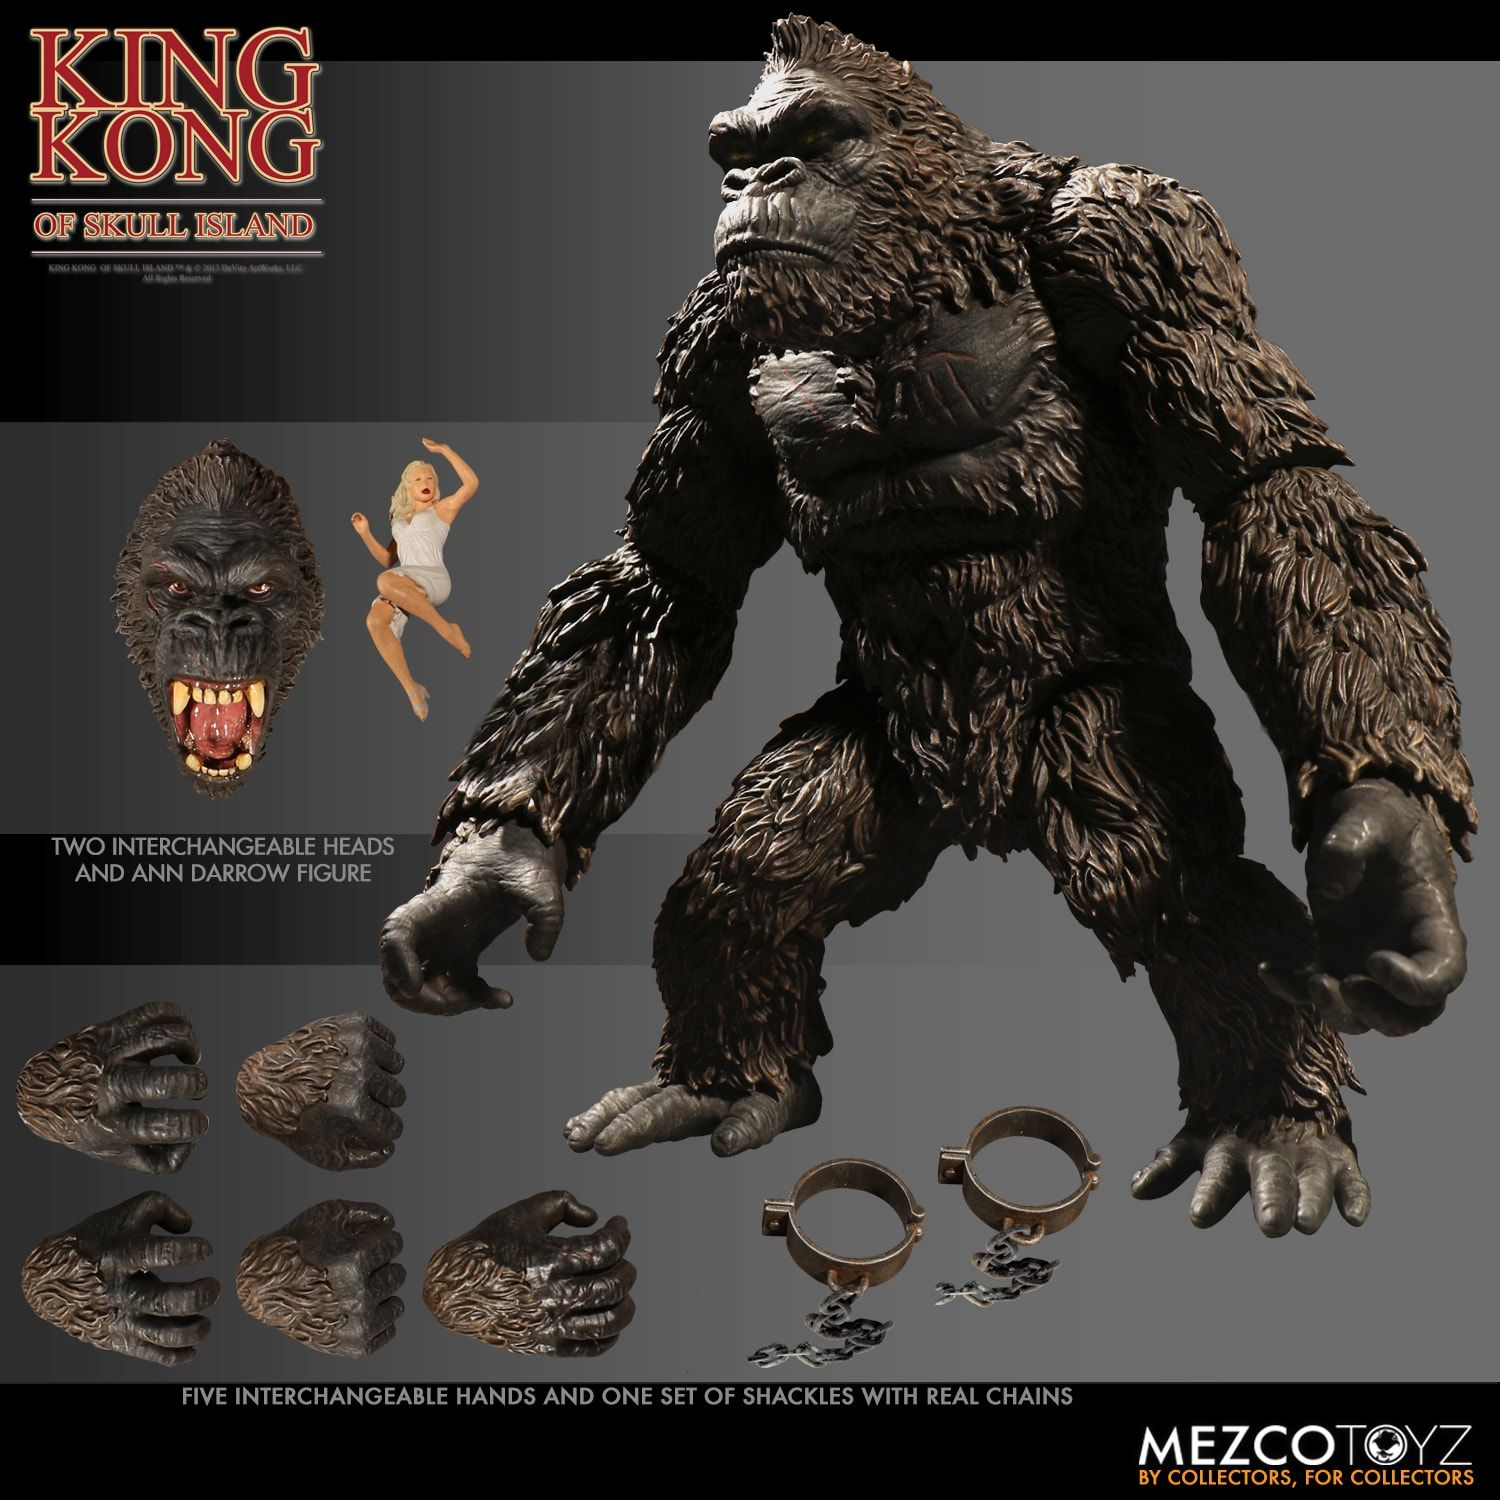 Please COD Movie King Kong Action Figure Toys Figurine Kingkong Figure Collection Action Figure Model Toy Gift 18cm wOur